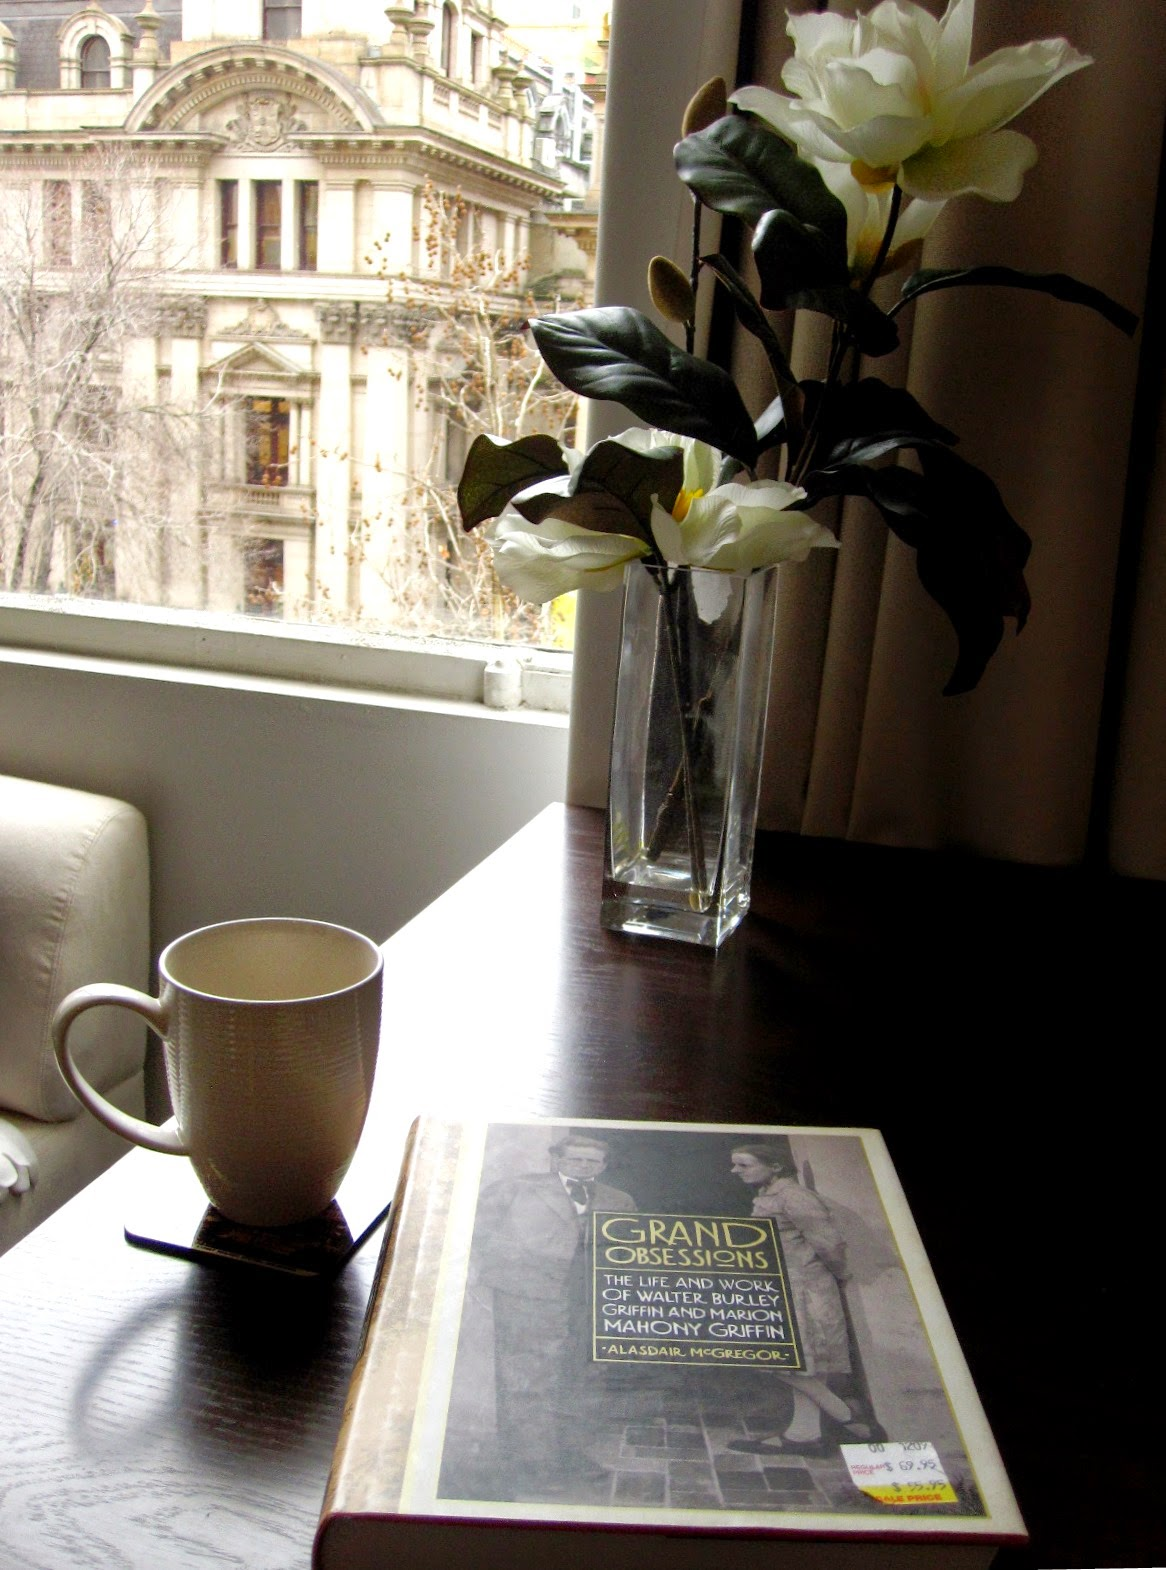 Table with a vase of magnolias, a mug and a book on it. The window behind overlooks an old Melbourne building on Swanston Street..